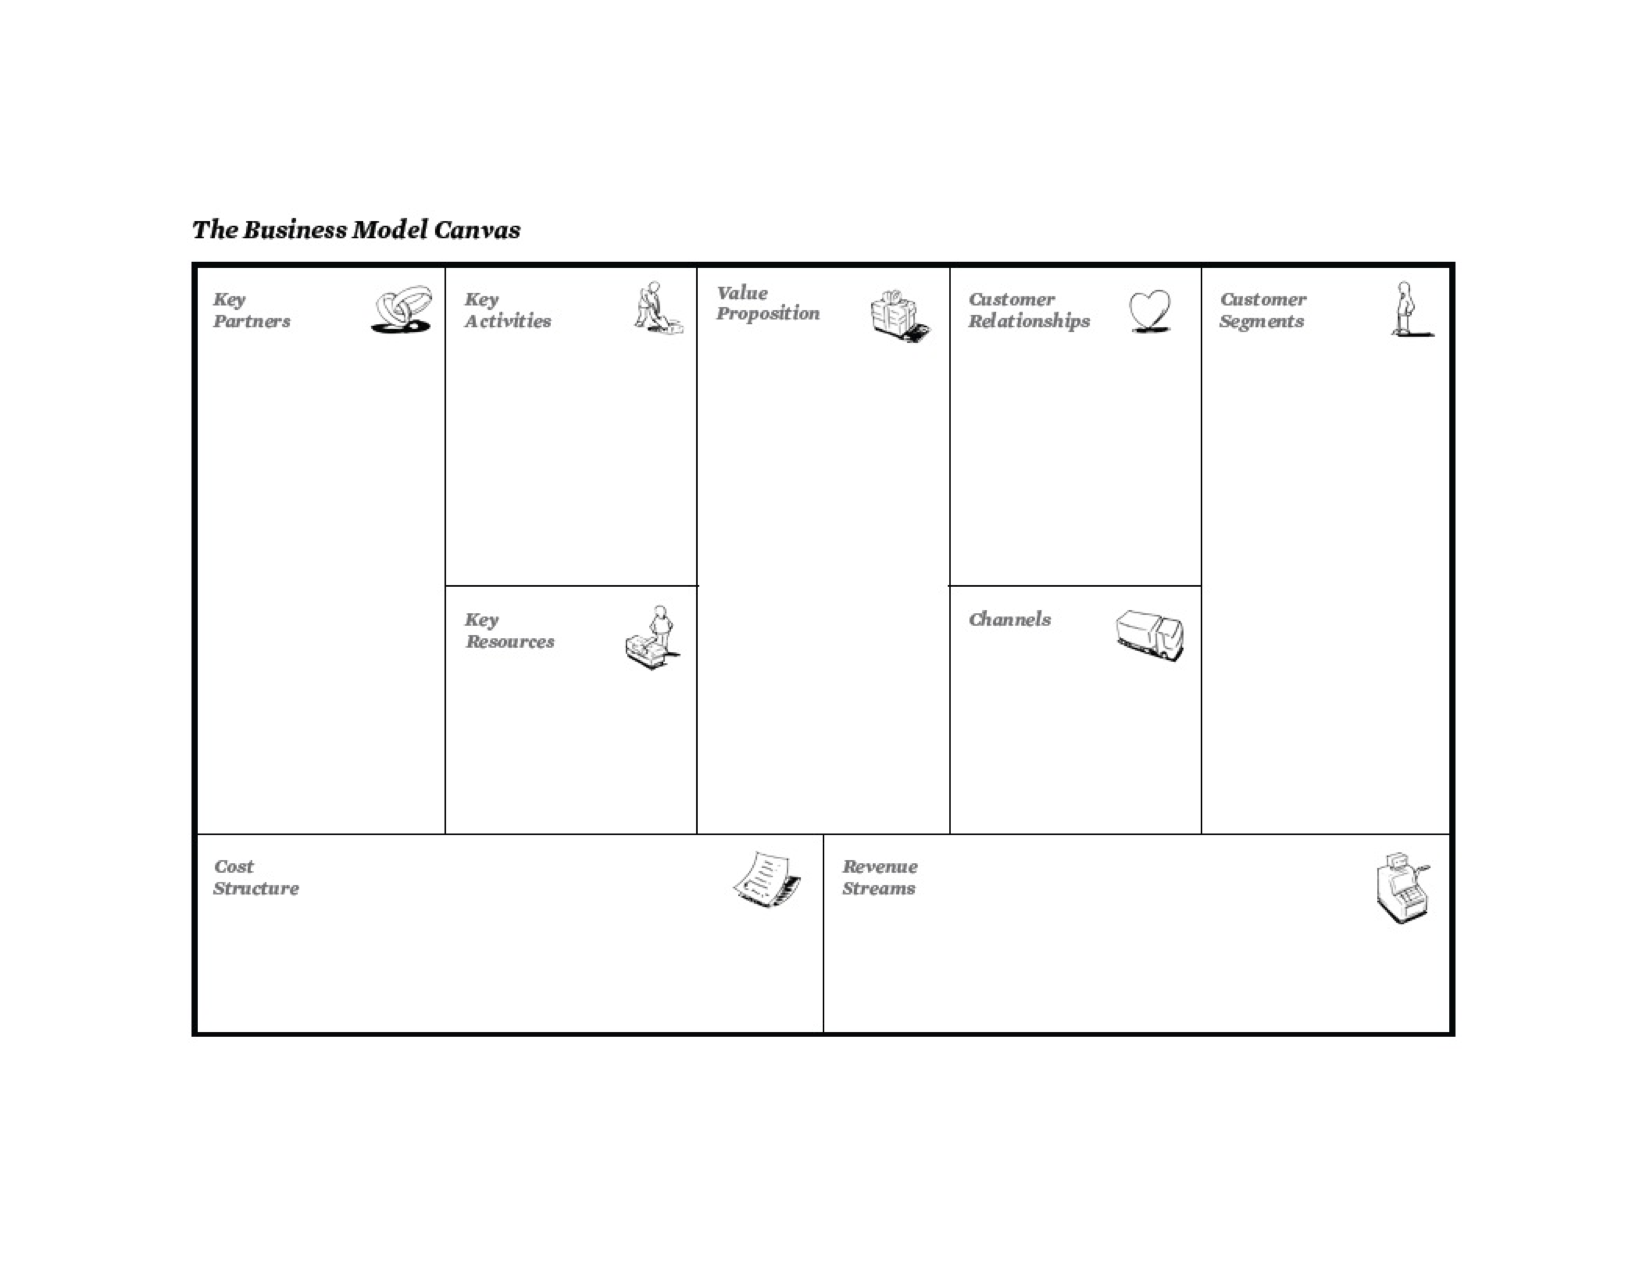 Why apply business models to startups venture for all we will spend more time with this concept after taking a look at the alexander osterwalder and yves pigneurs business model canvas bmc flashek Gallery